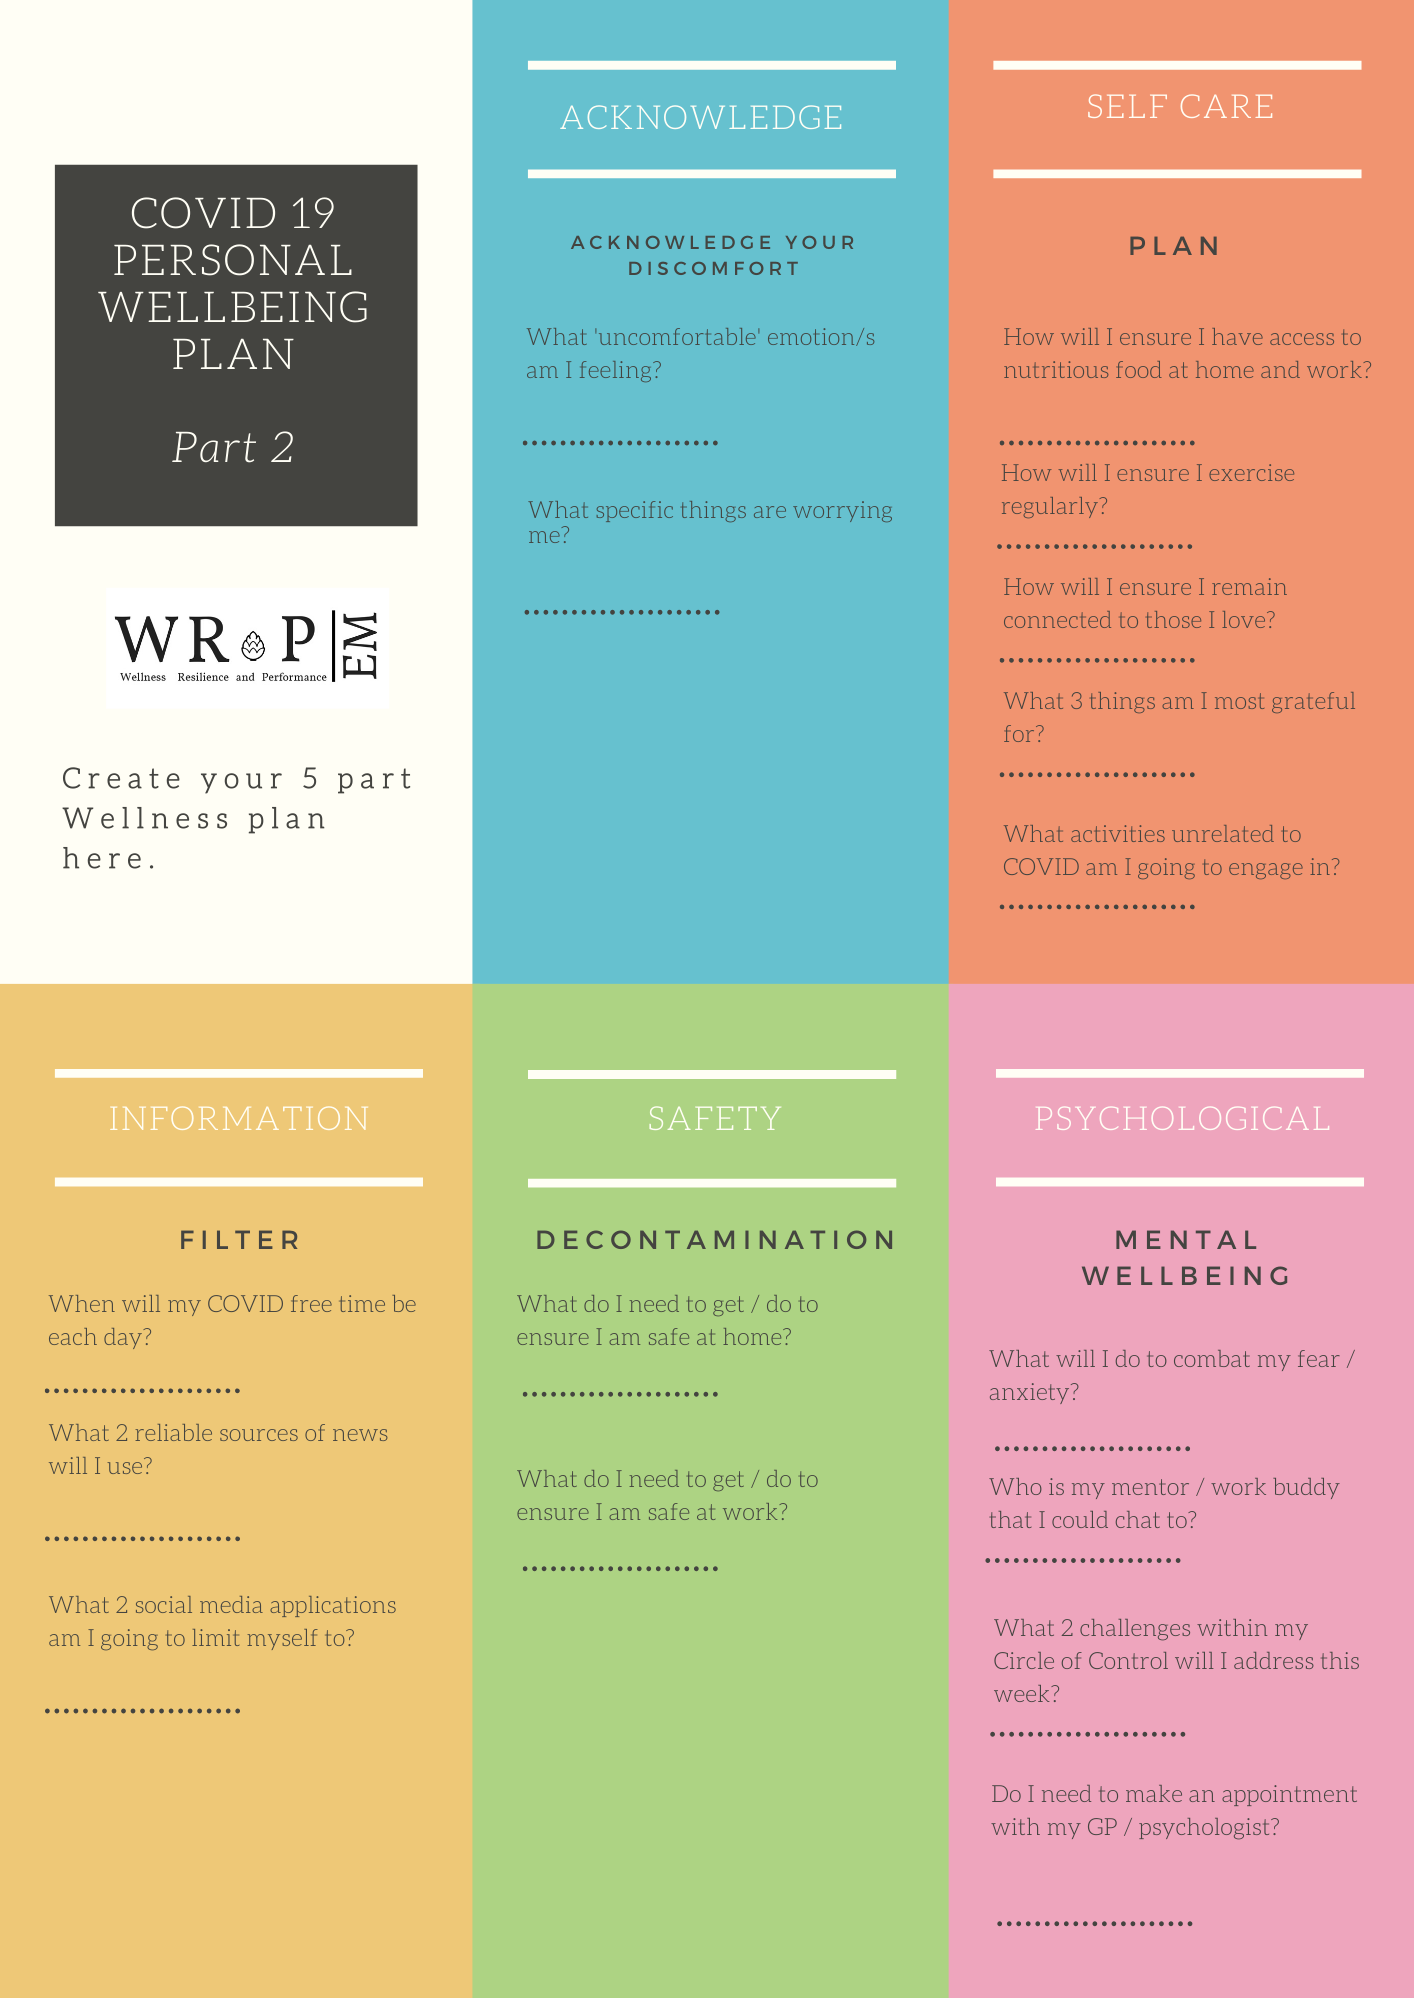 covid wellbeing plan 2